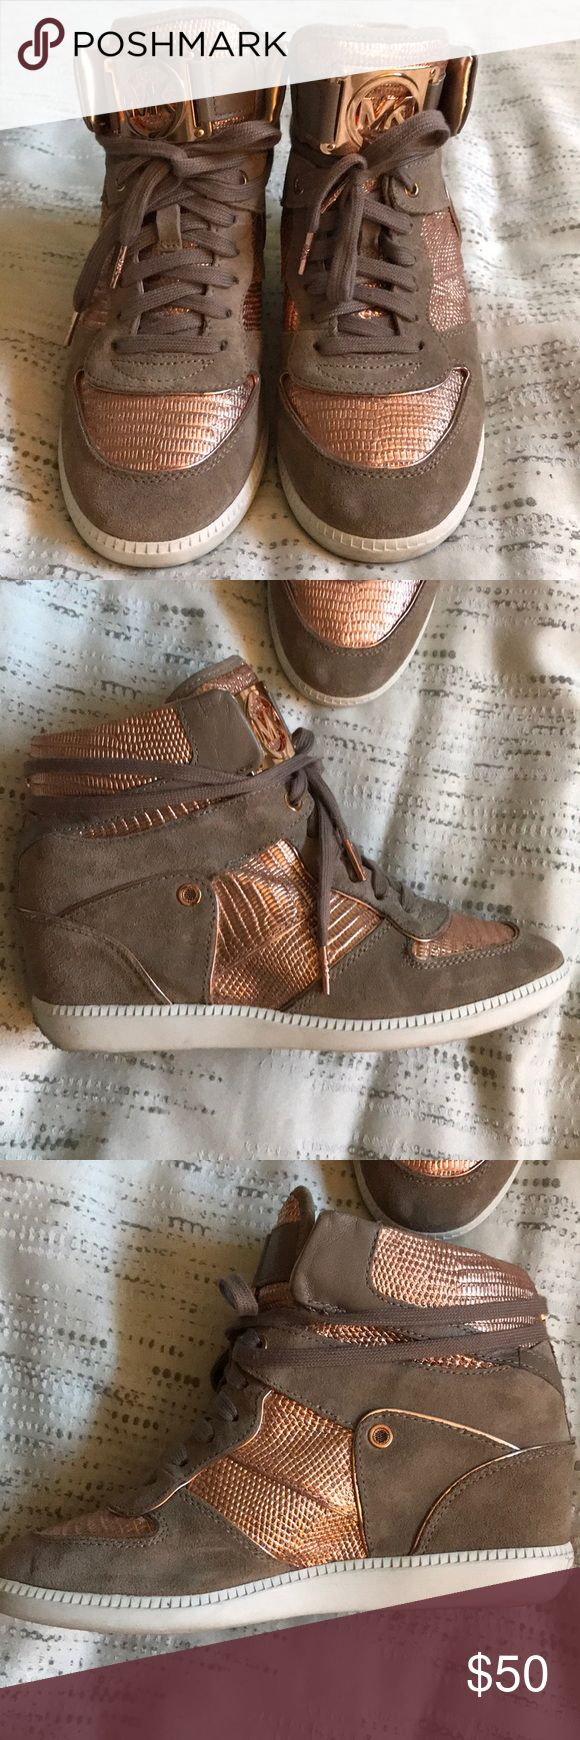 Rose Gold and Taupe Suede Sneaker Wedges Worn only once, these rose gold and taupe suede Michael Kors wedge sneakers are great for the girl looking to up her trendy look. Still in perfect condition and extremely comfortable. Michael Kors Shoes Sneakers